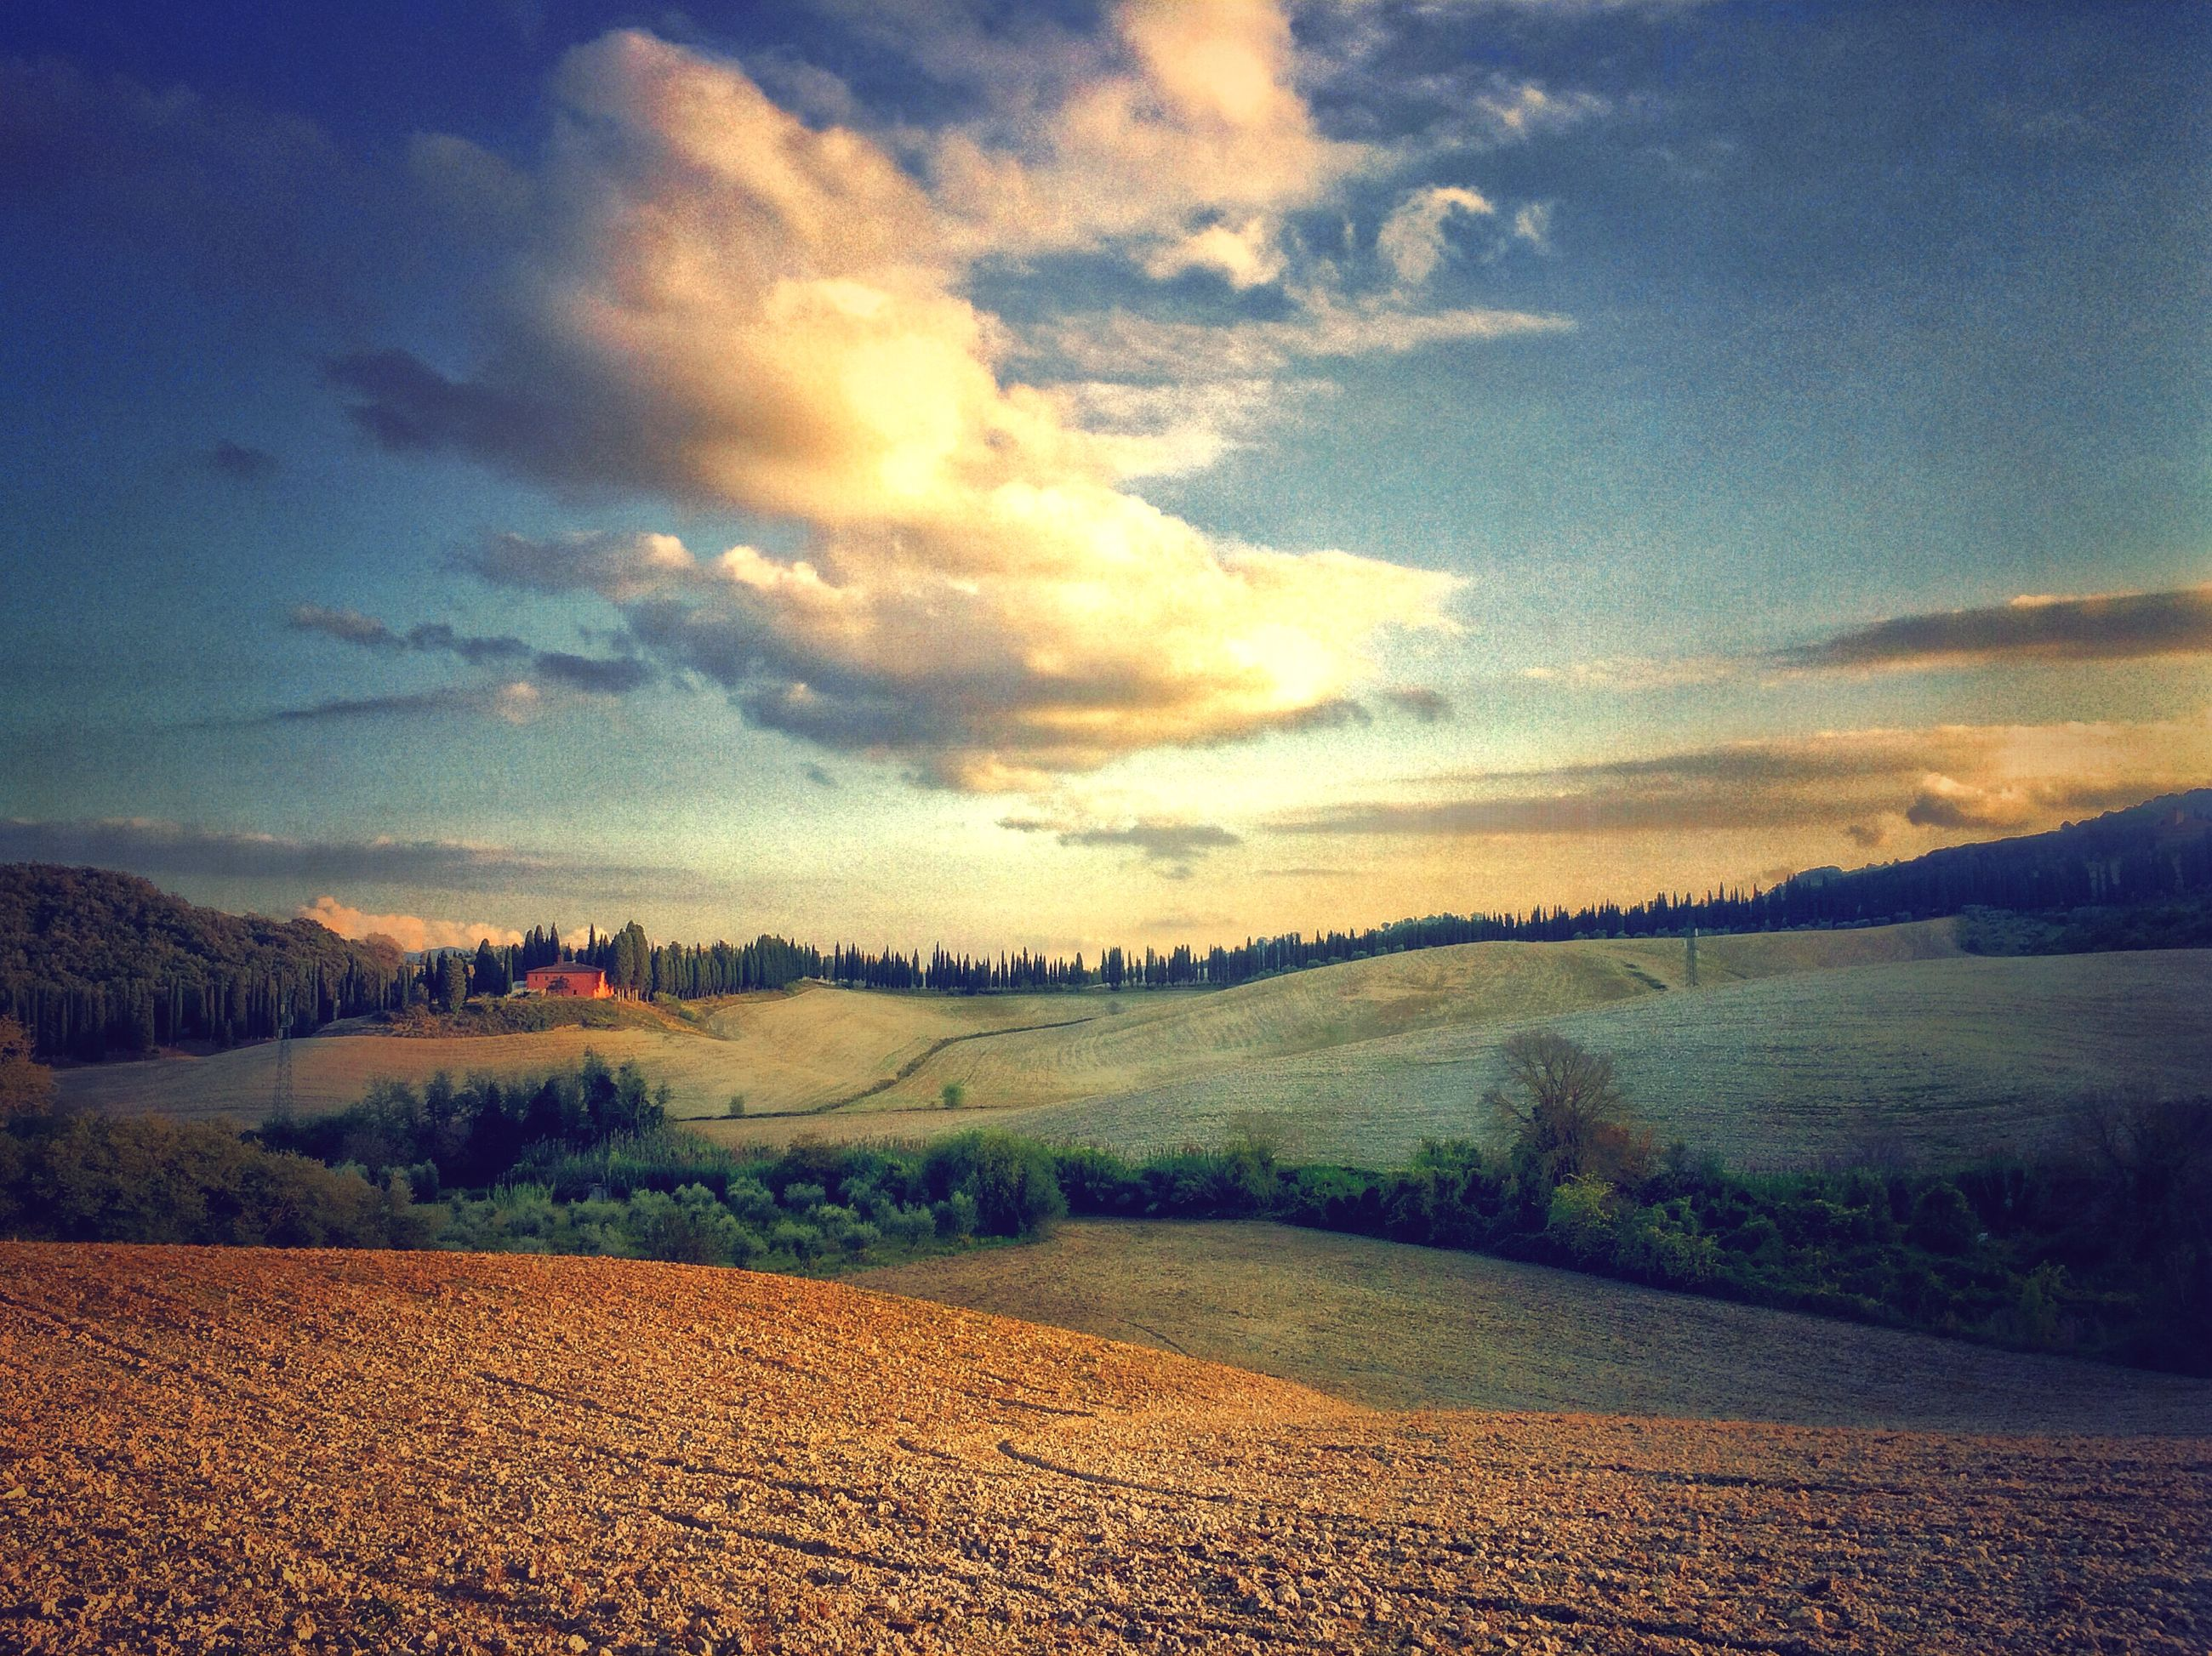 landscape, sky, tranquil scene, tranquility, scenics, cloud - sky, beauty in nature, nature, field, cloud, sunset, horizon over land, sand, rural scene, idyllic, agriculture, cloudy, non-urban scene, remote, outdoors